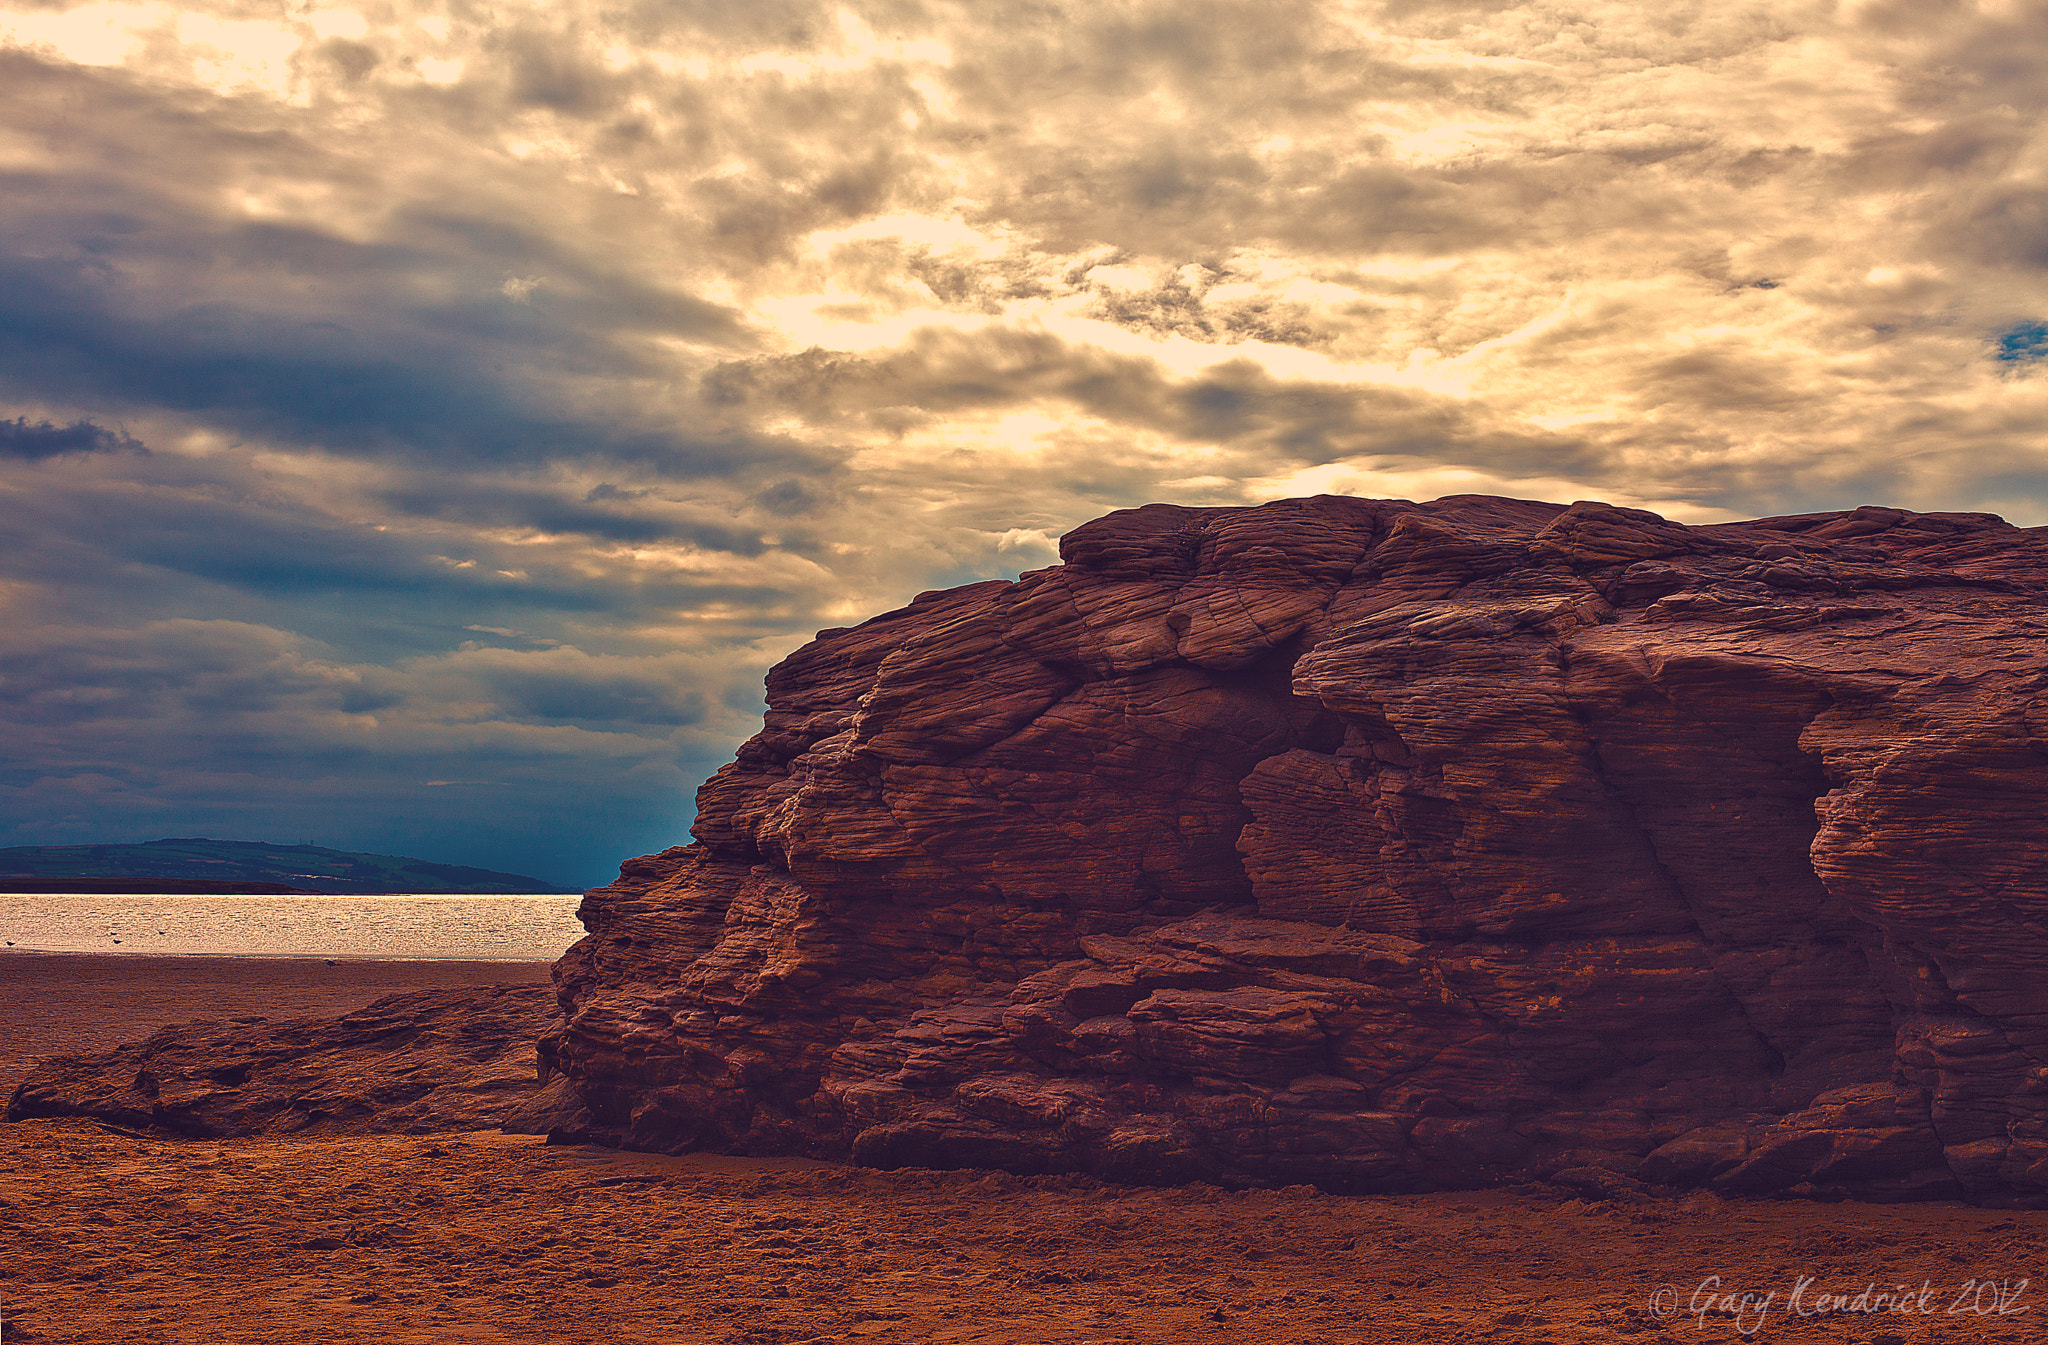 Photograph Red Rocks by Gary Kendrick on 500px